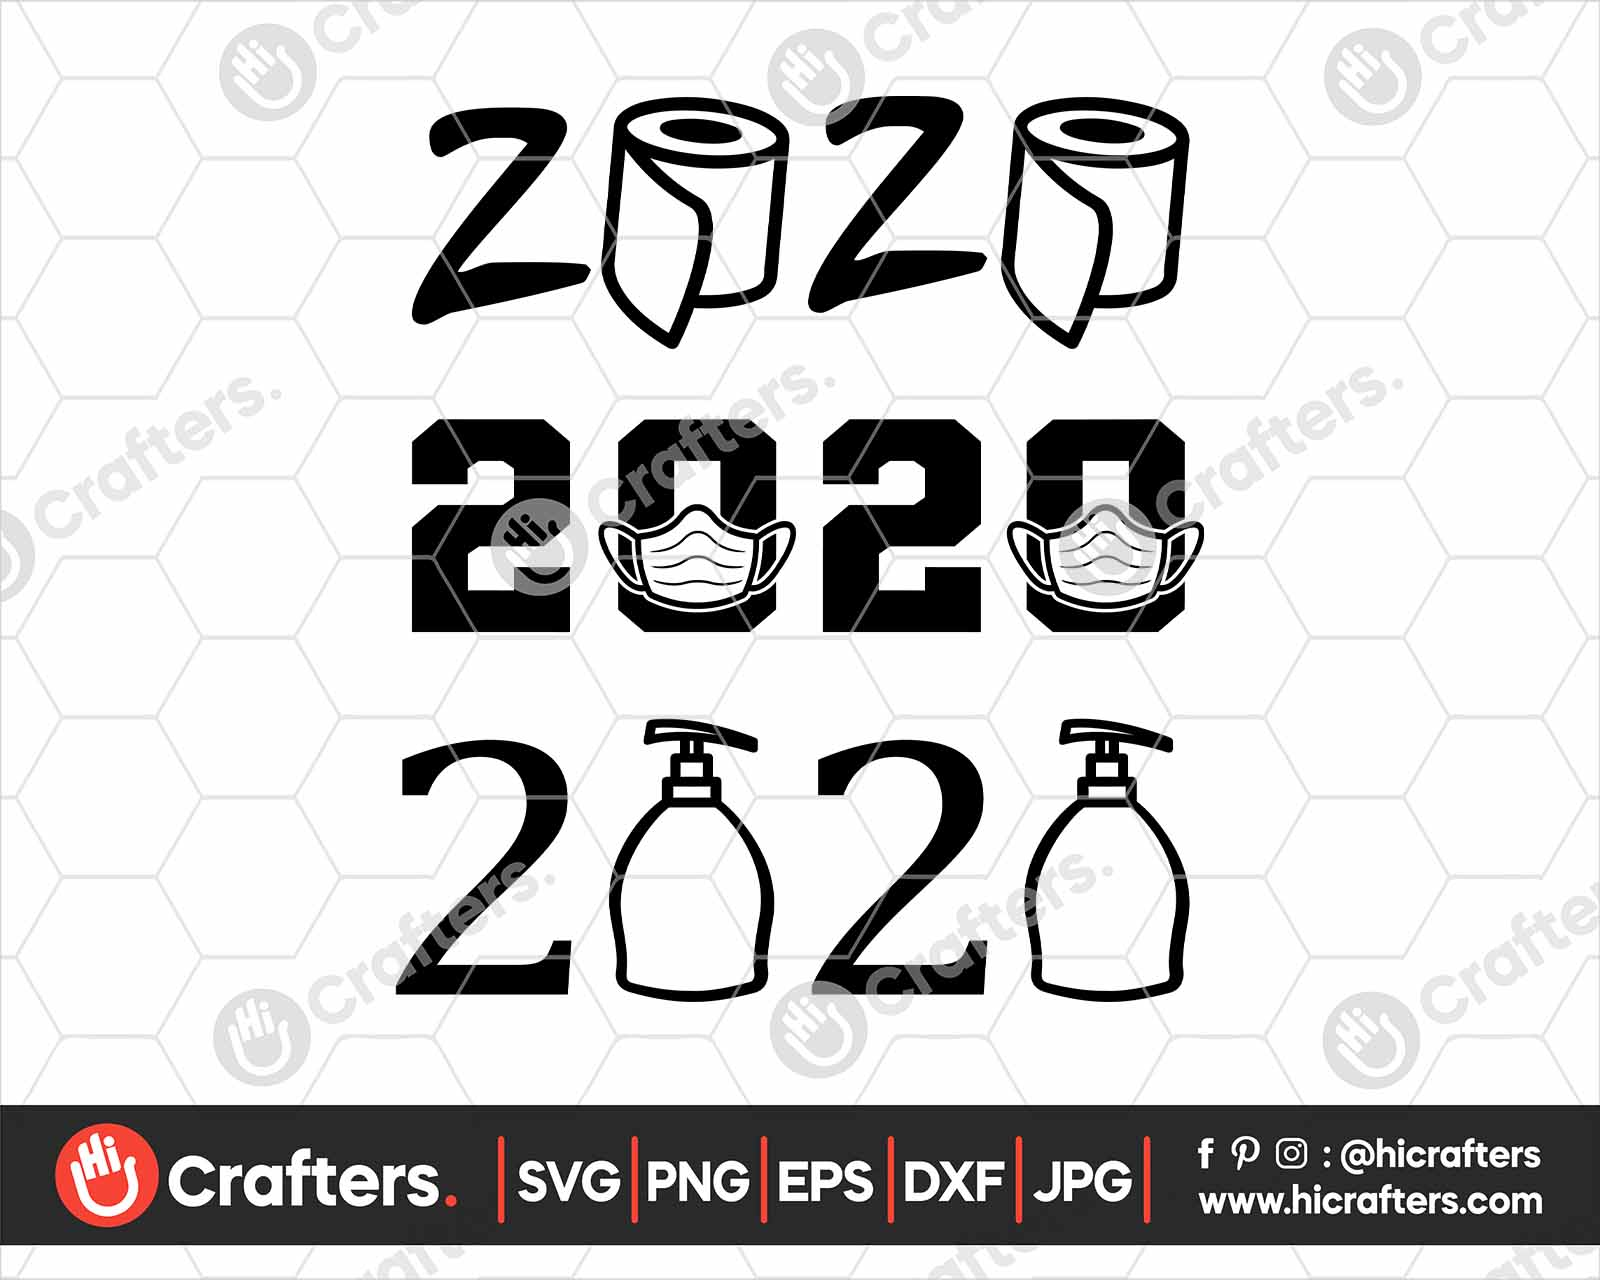 2020 Toilet Paper Svg 2020 Svg With Mask Hi Crafters